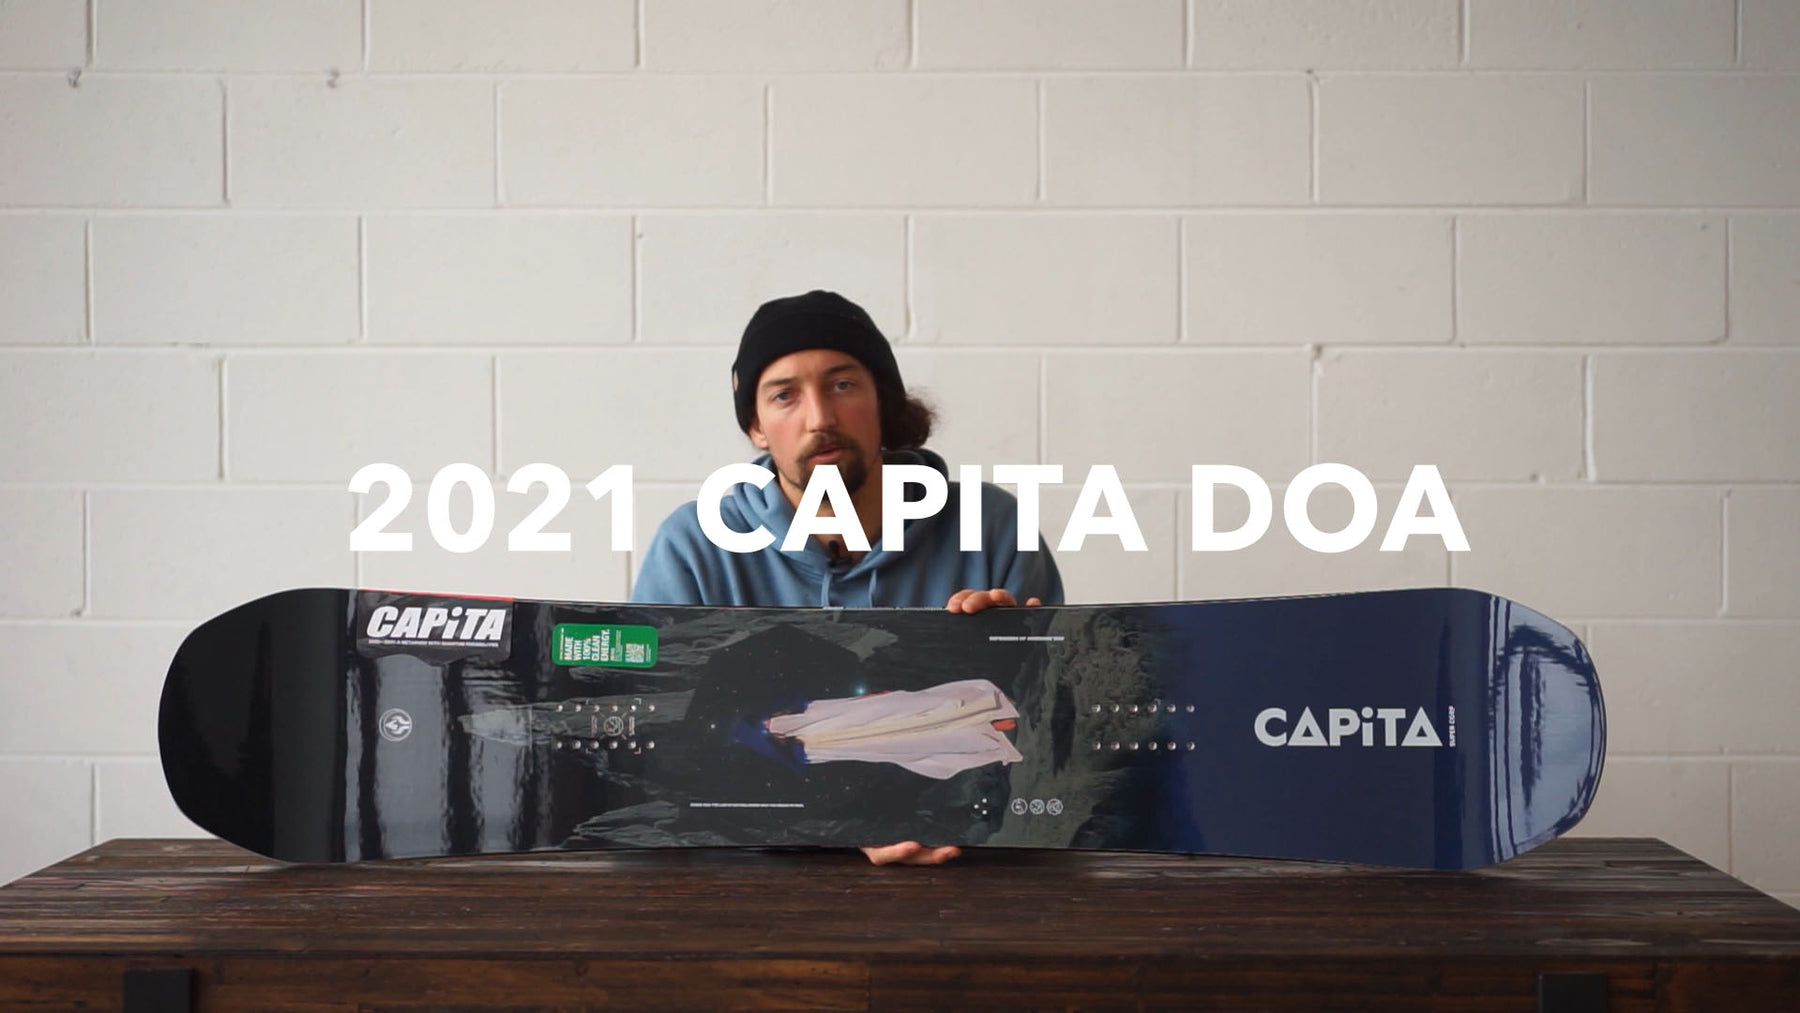 2021 Capita DOA Snowboard Review